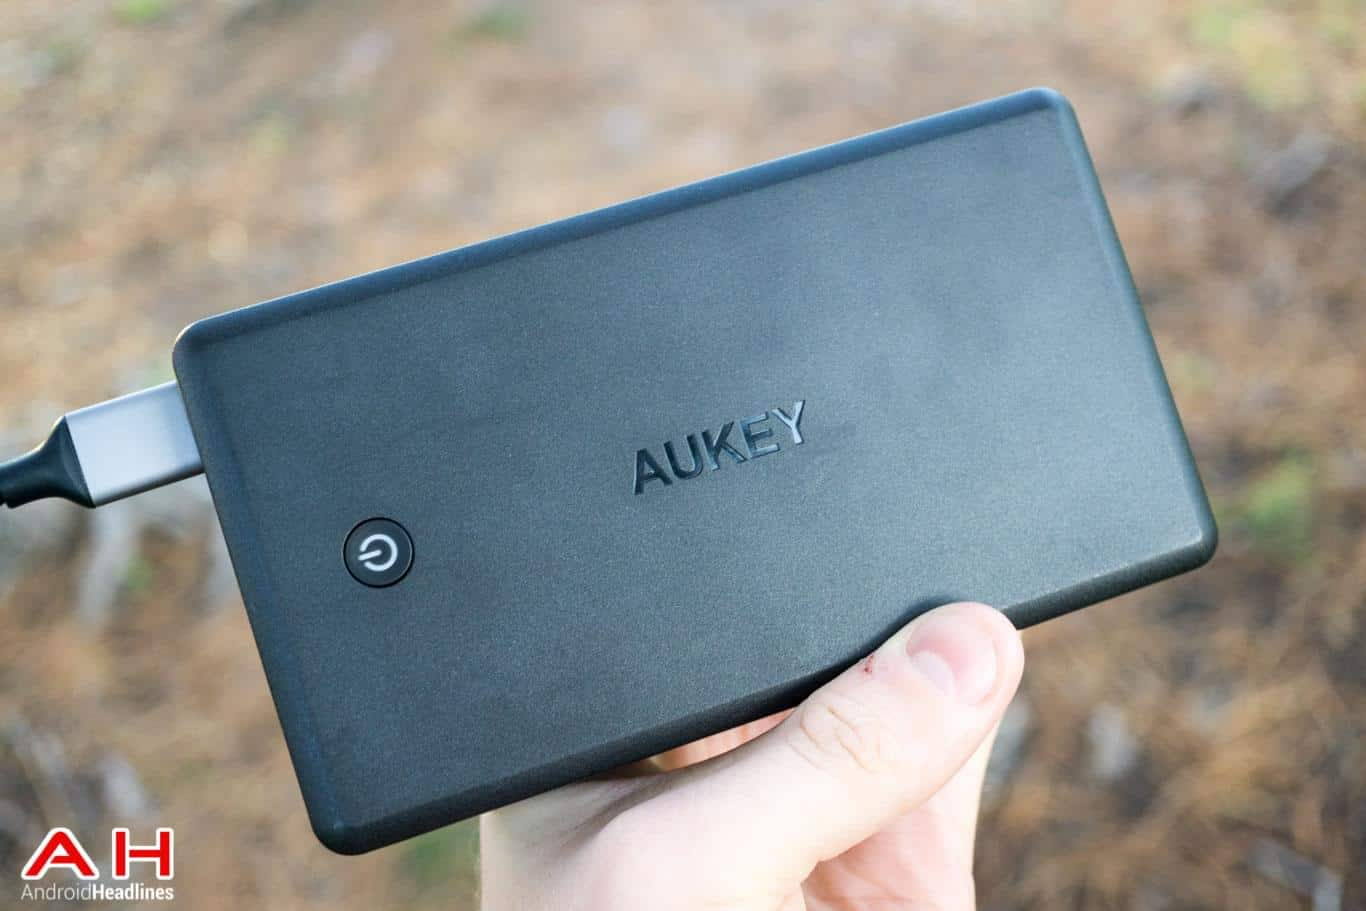 Review Aukey 30000mah Portable Charger With Quick Charge 30 Qc Qc3 Battery Pack Ah 10